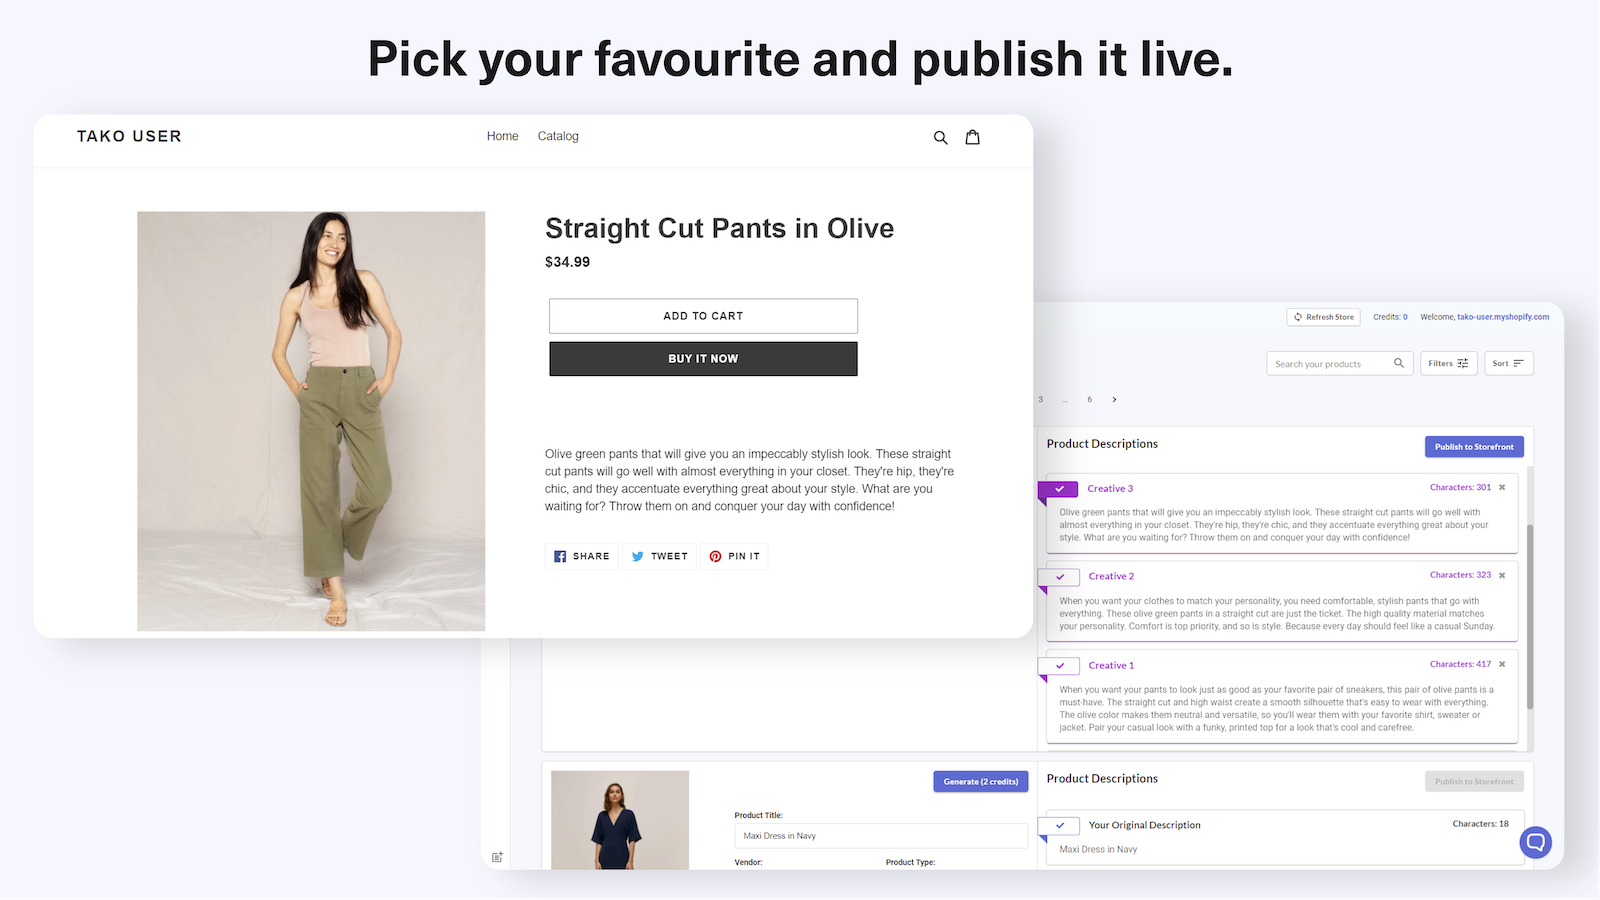 Save descriptions live to the copywriting on your product page